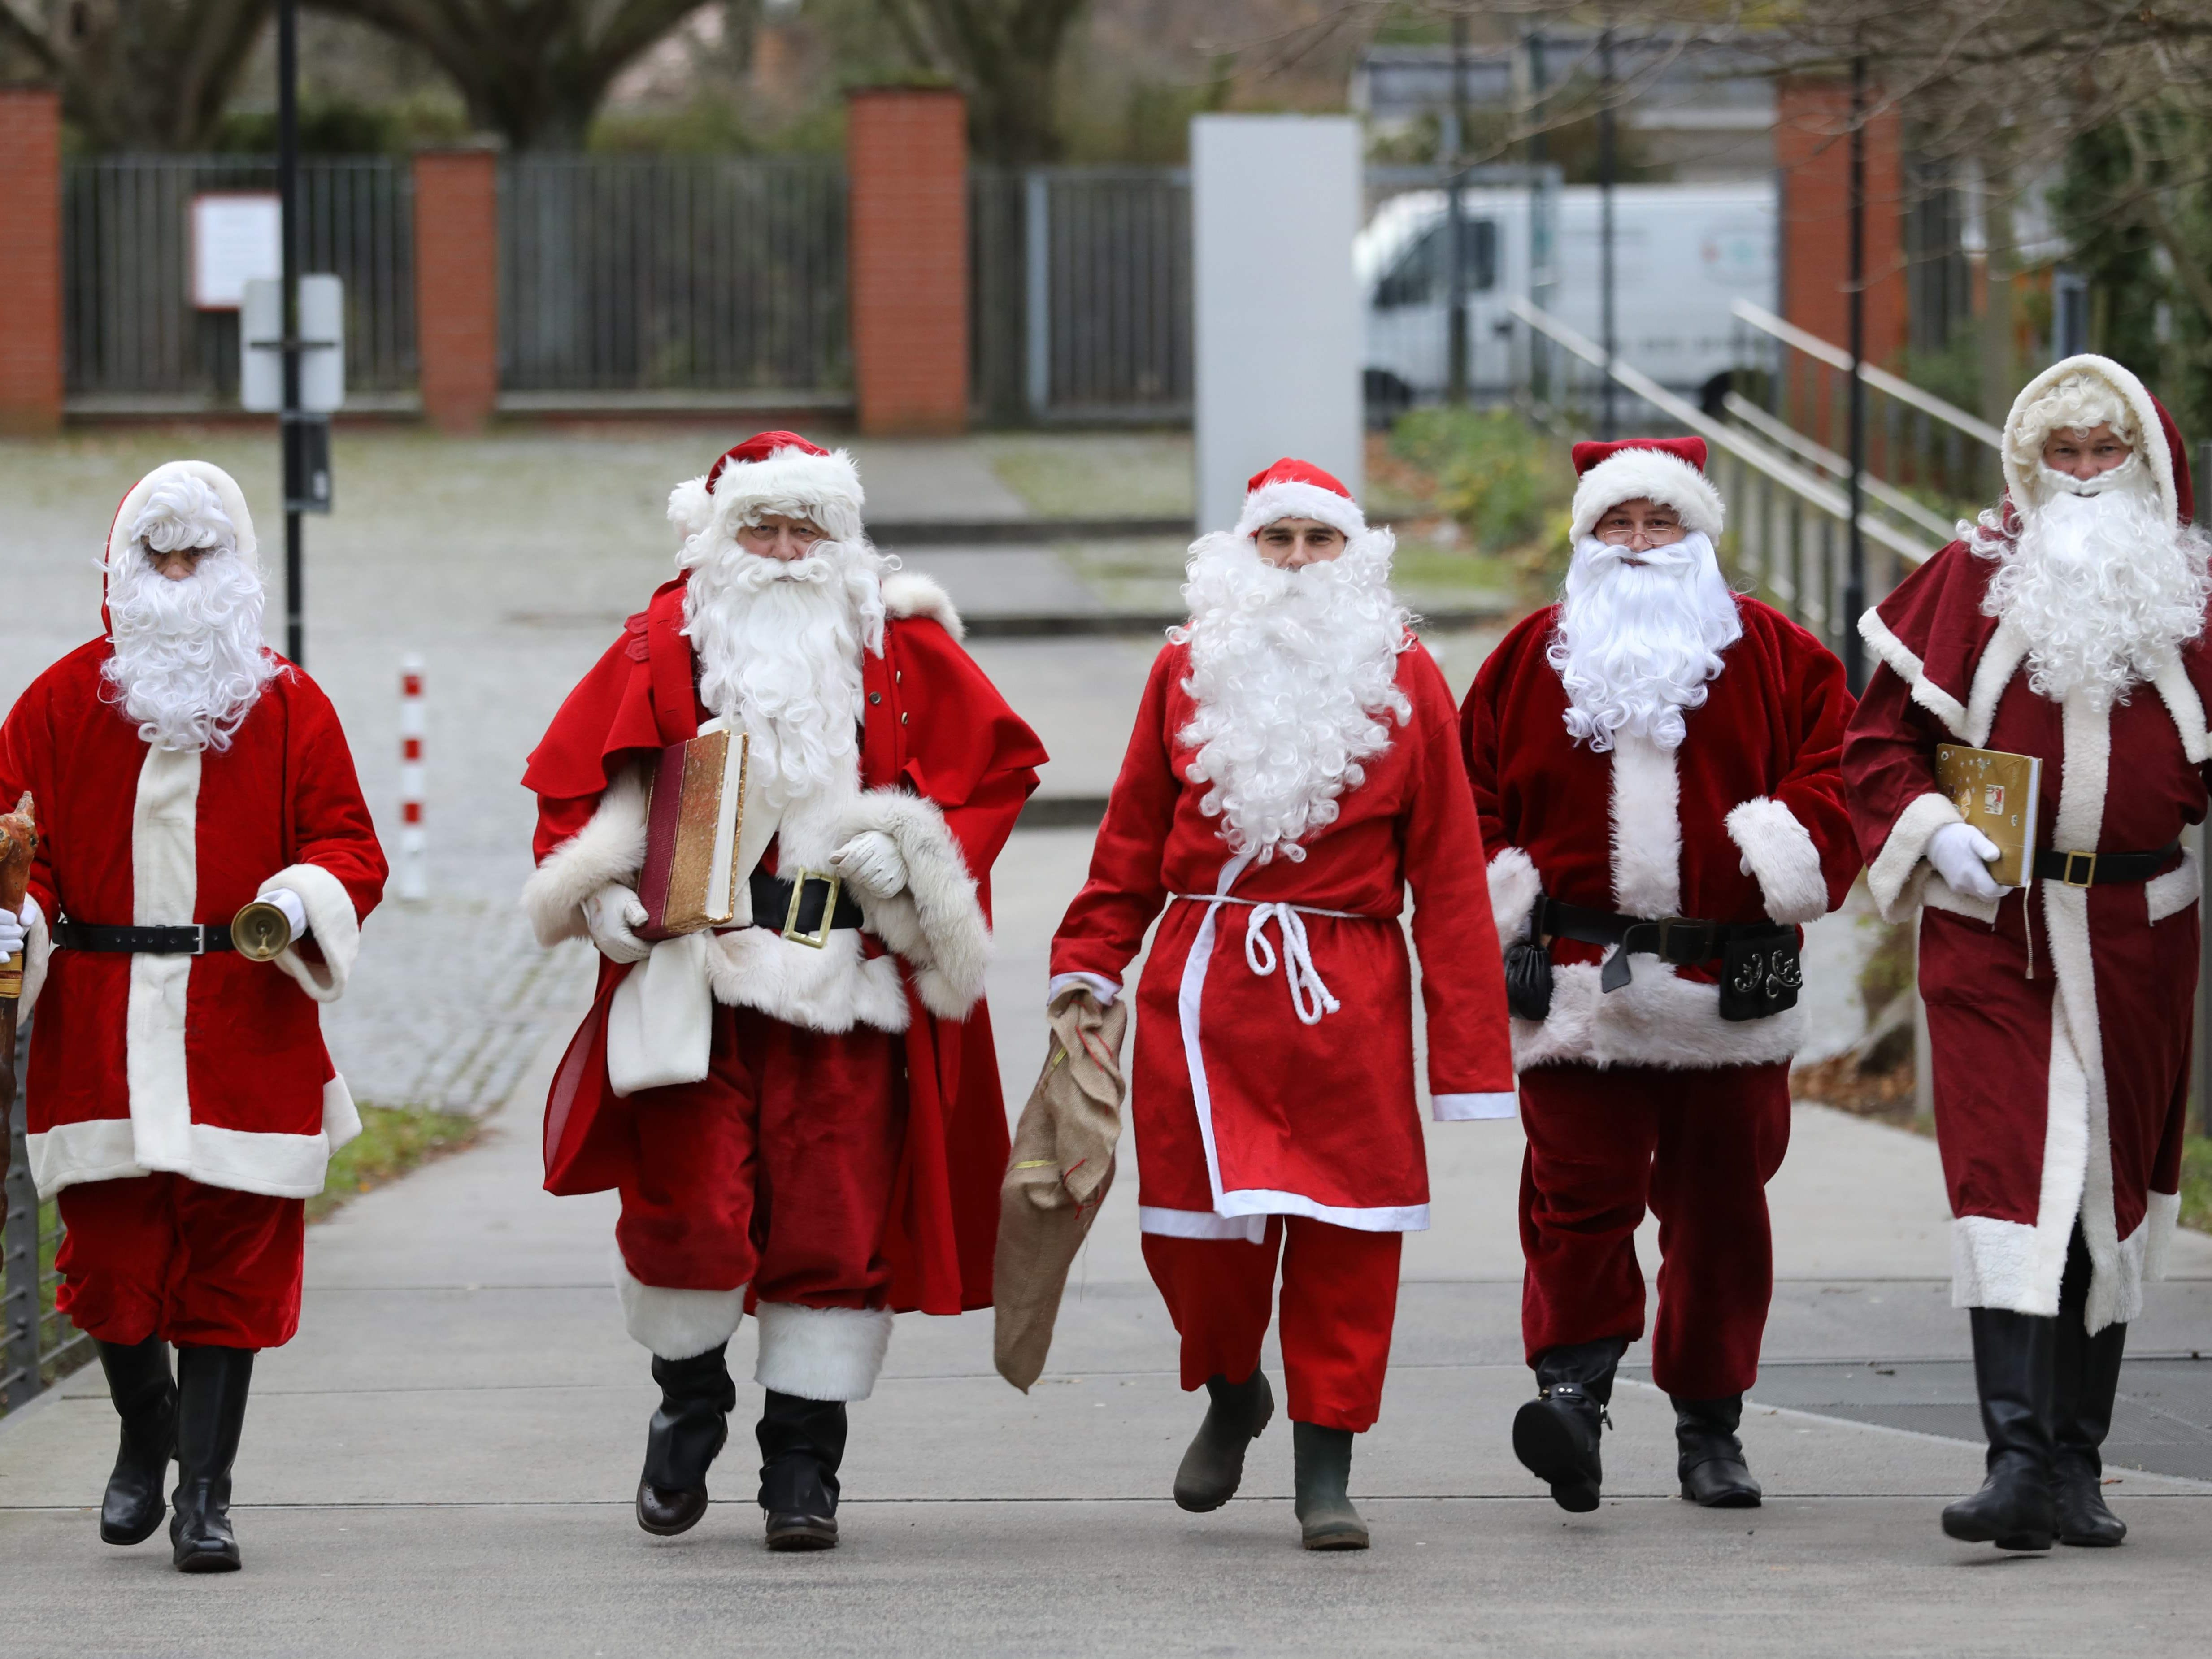 These are candidates for a job at the Santa Claus agency in Rostock,  Germany, Dec. 11, 2018.